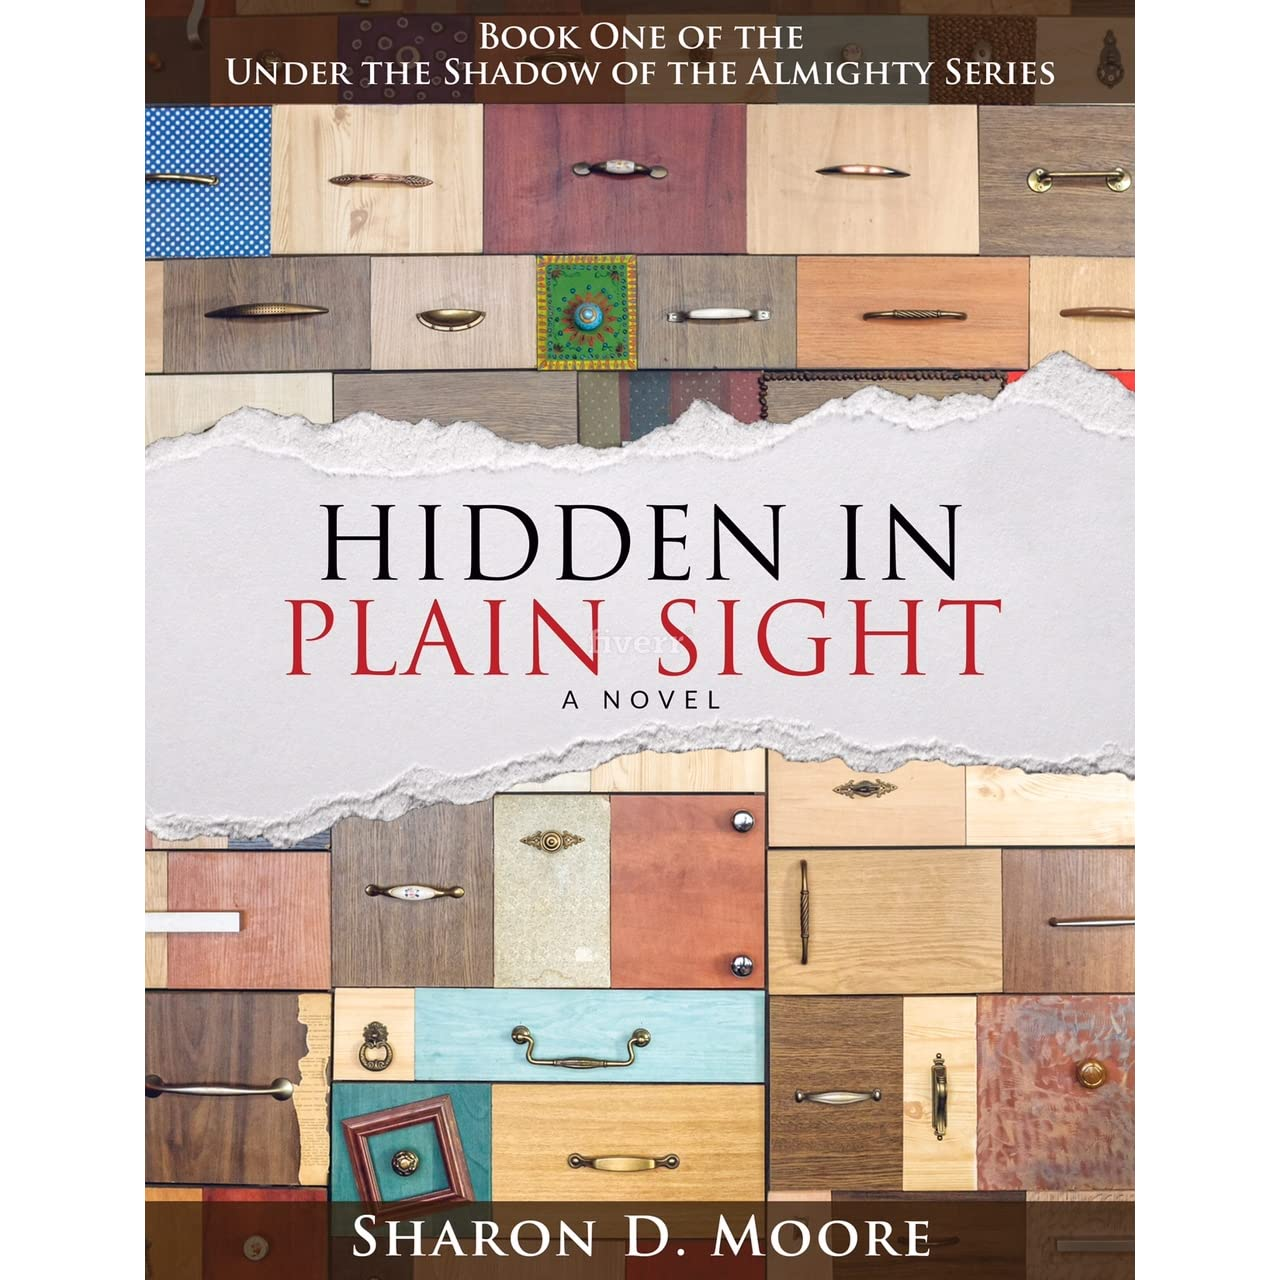 hidden in plain sight under the shadow of the almighty by hidden in plain sight under the shadow of the almighty 1 by sharon d moore reviews discussion bookclubs lists